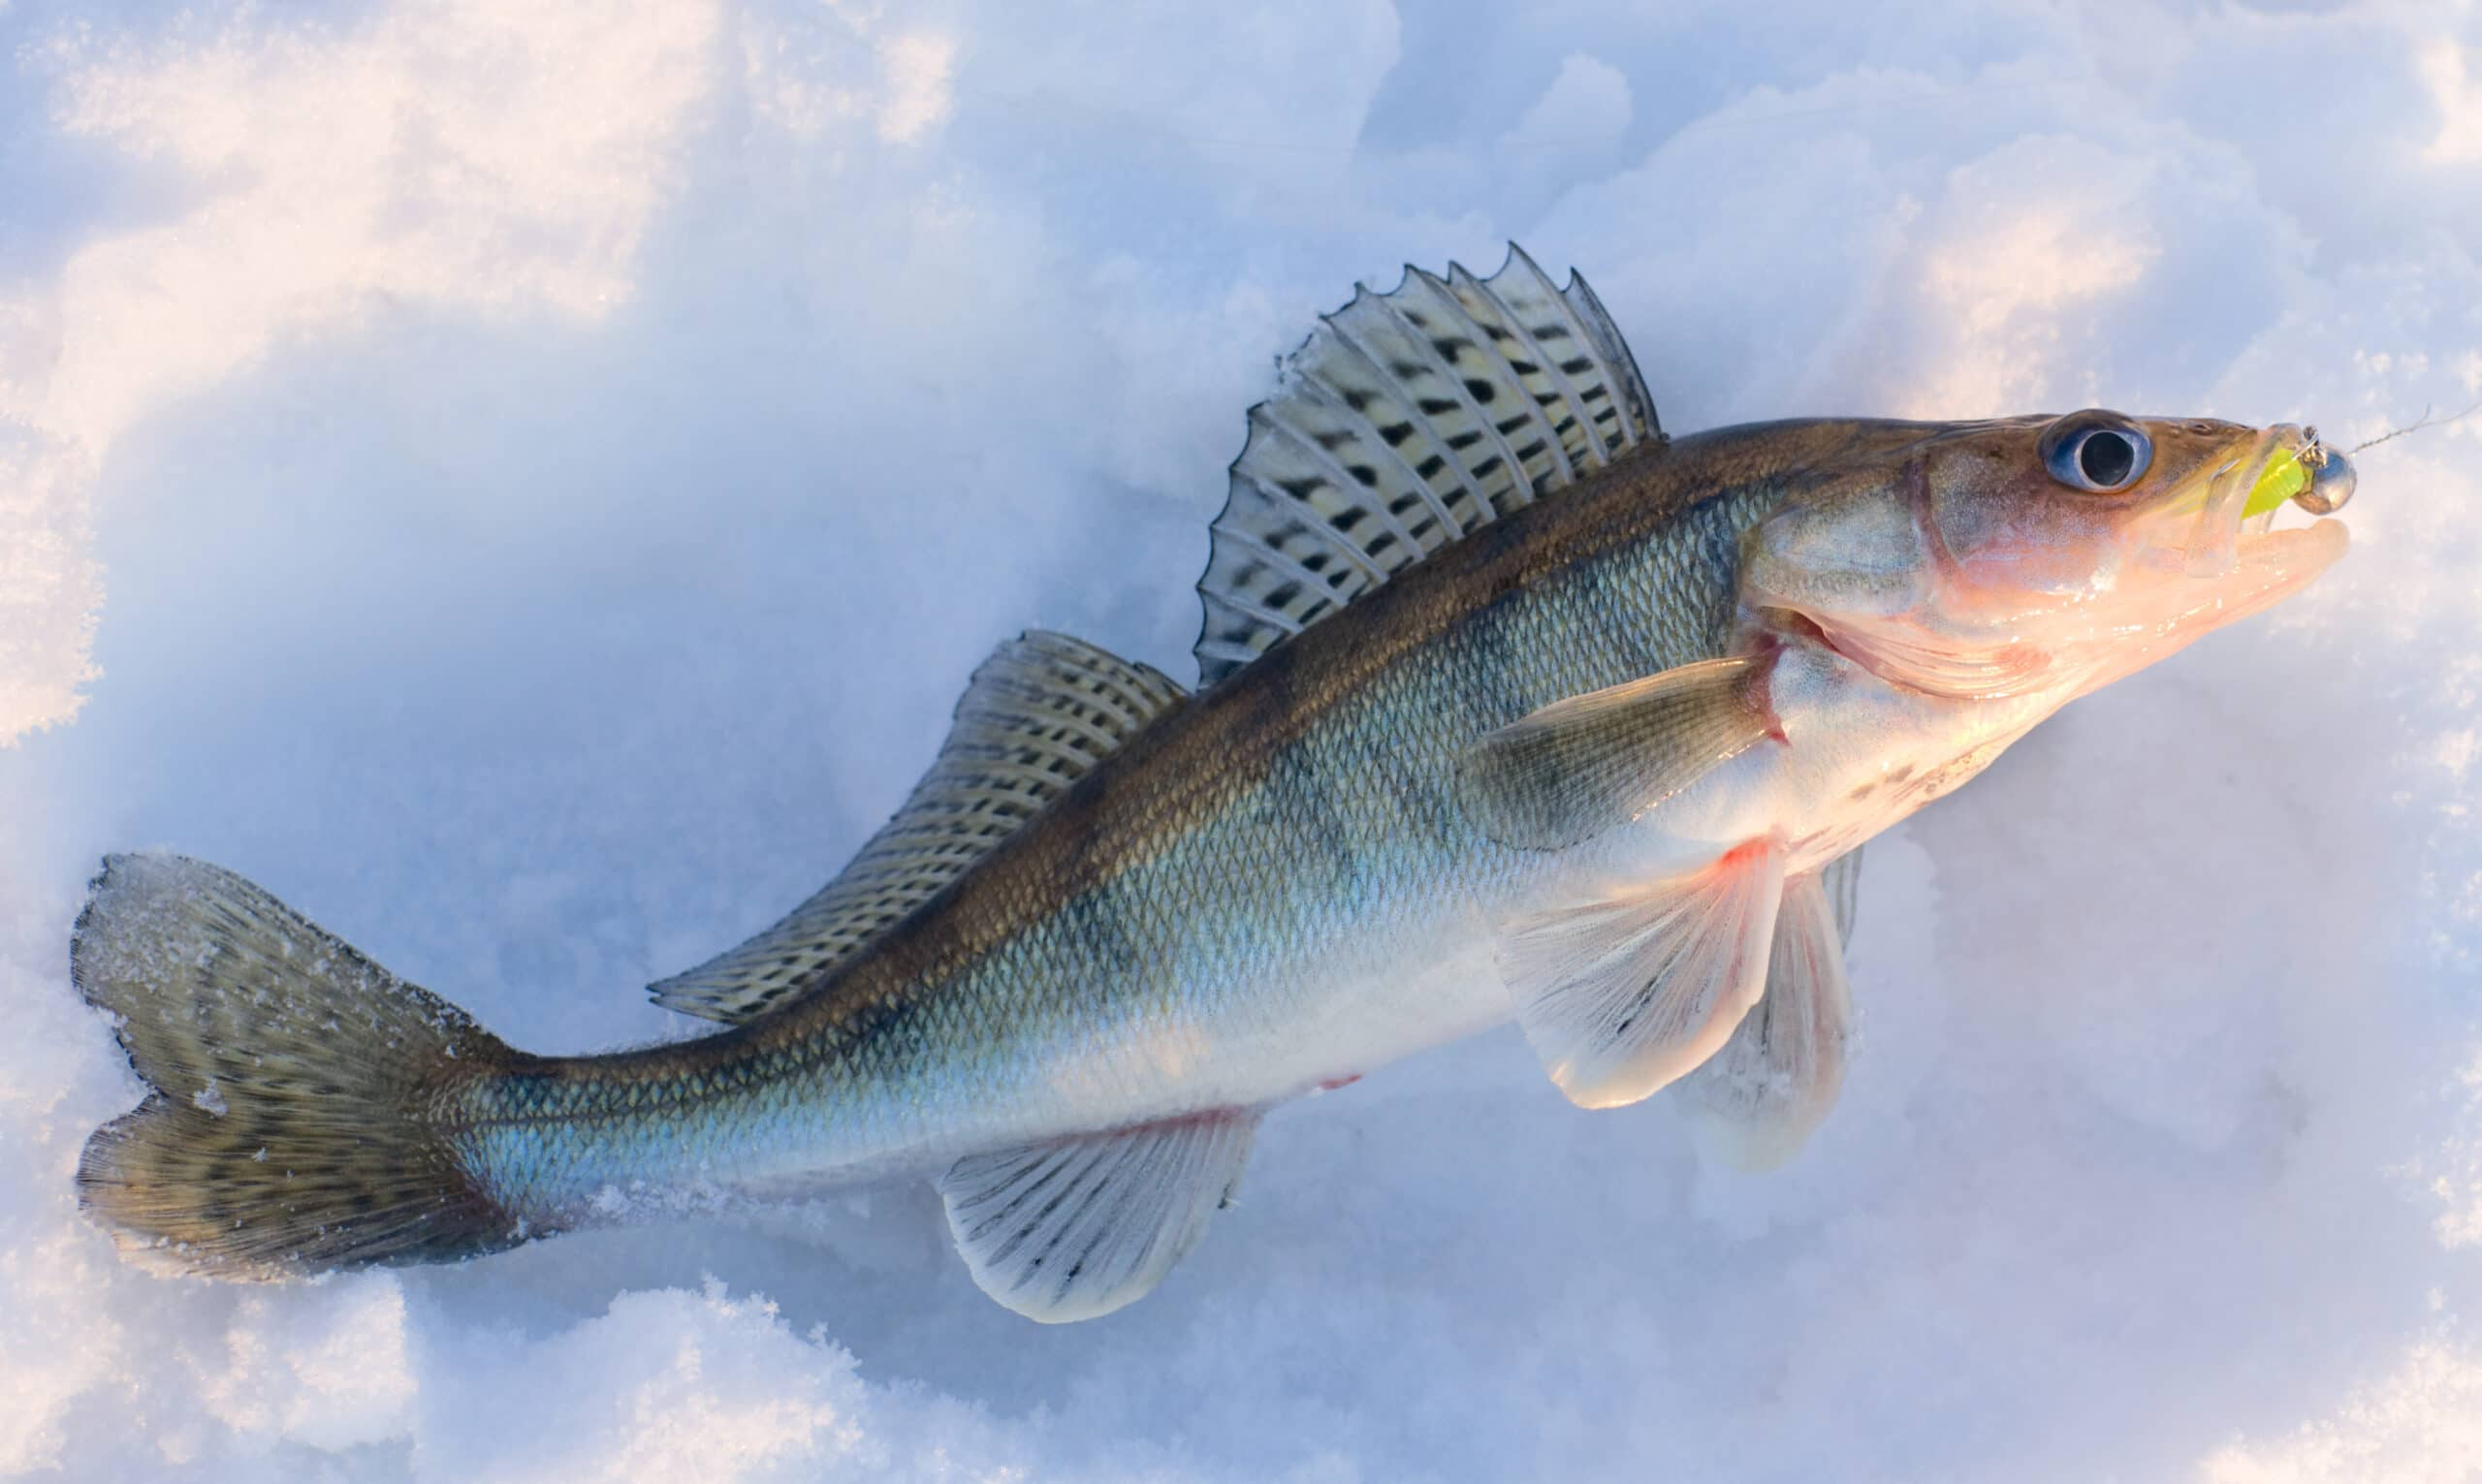 Walleye caught on jig lure is lying on snow in last rays of sunlight, released after shooting